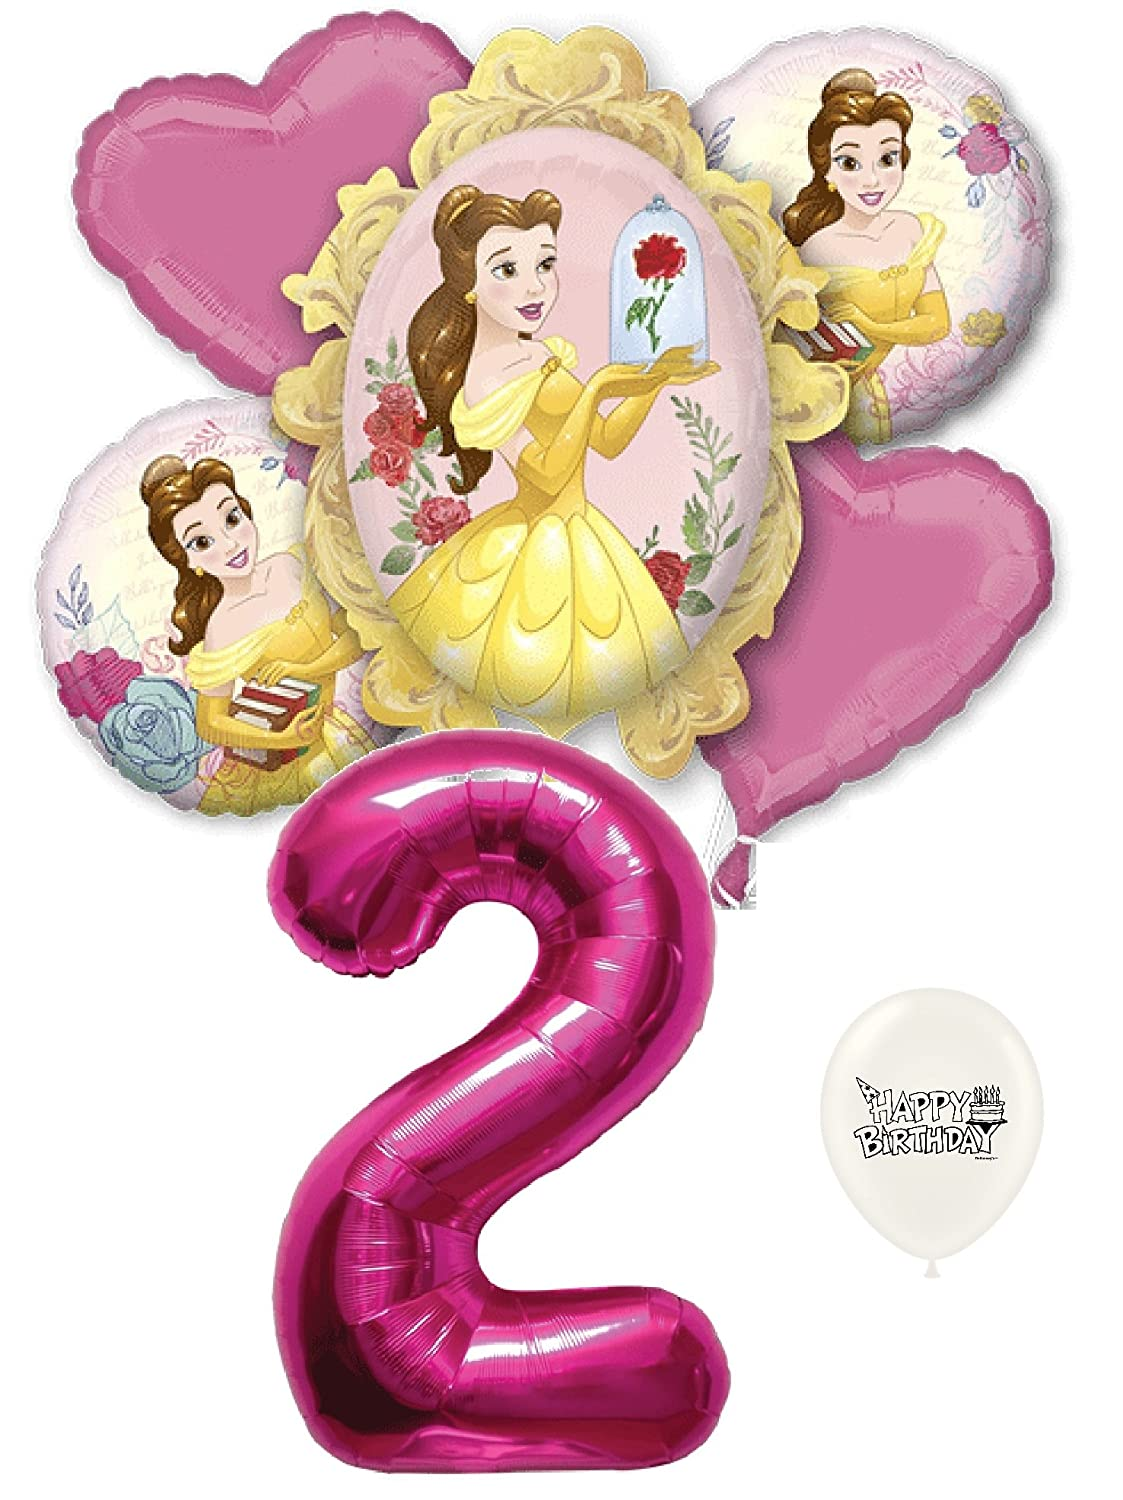 2 nd Birthday Beauty and the Beast Belleパーティーデコレーションバルーンブーケby Ballooney 's   B07BCMYV4W